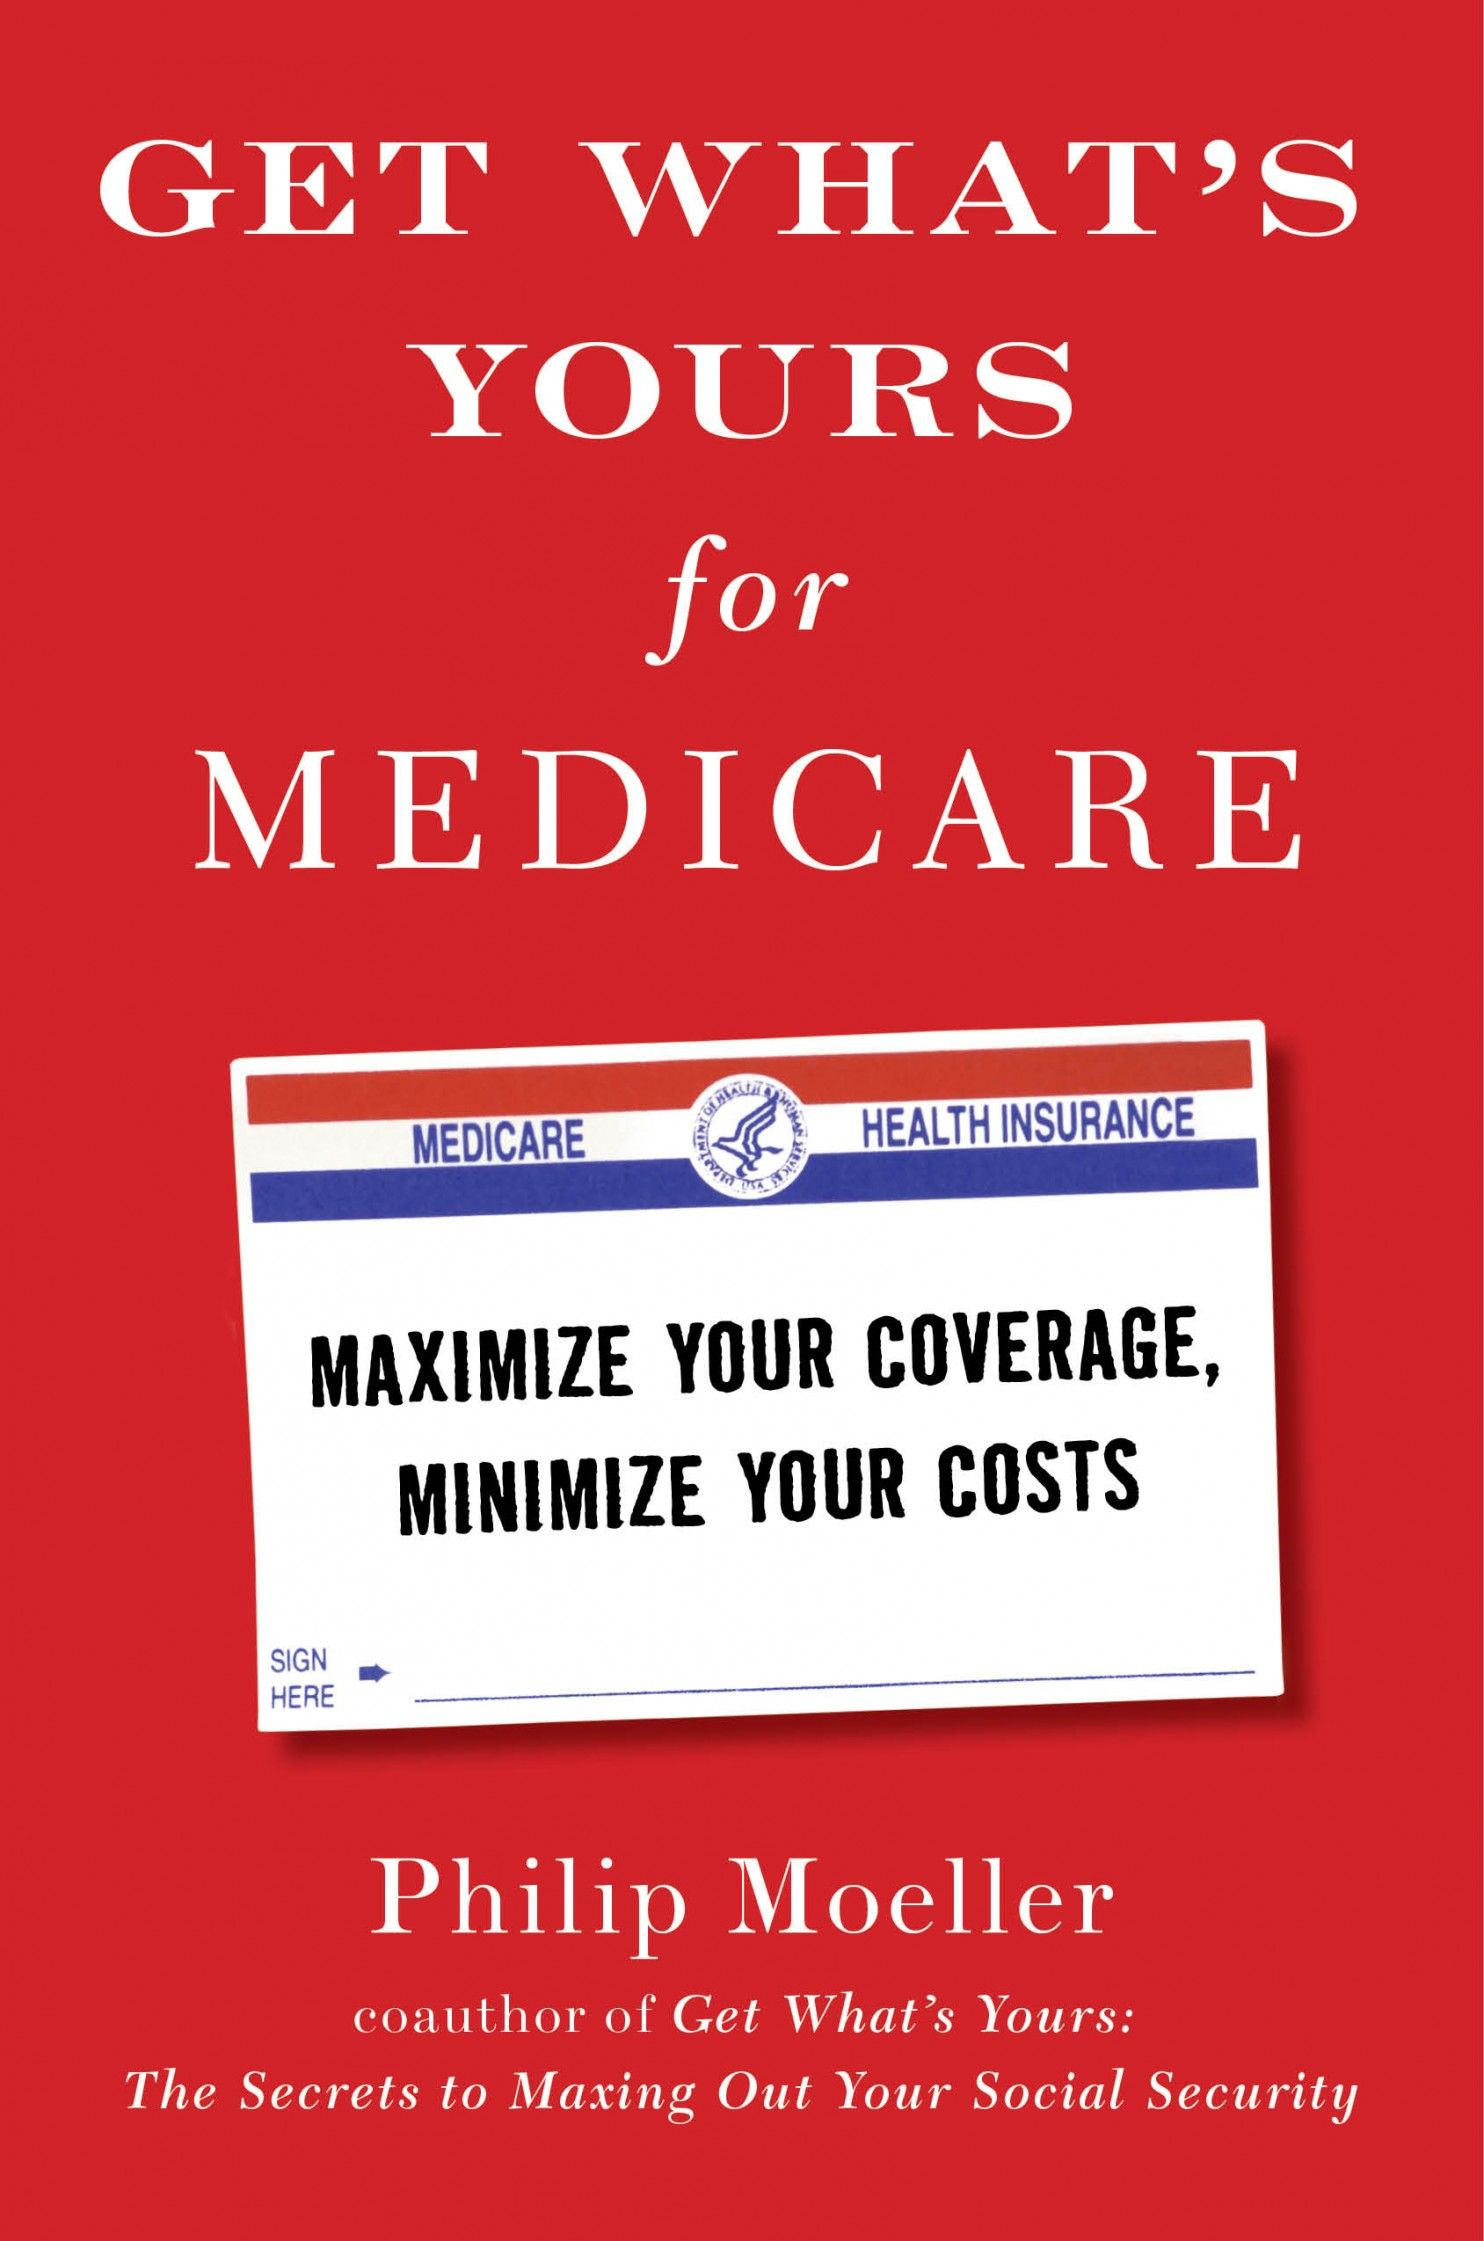 Getting the most out of Medicare Affordable health